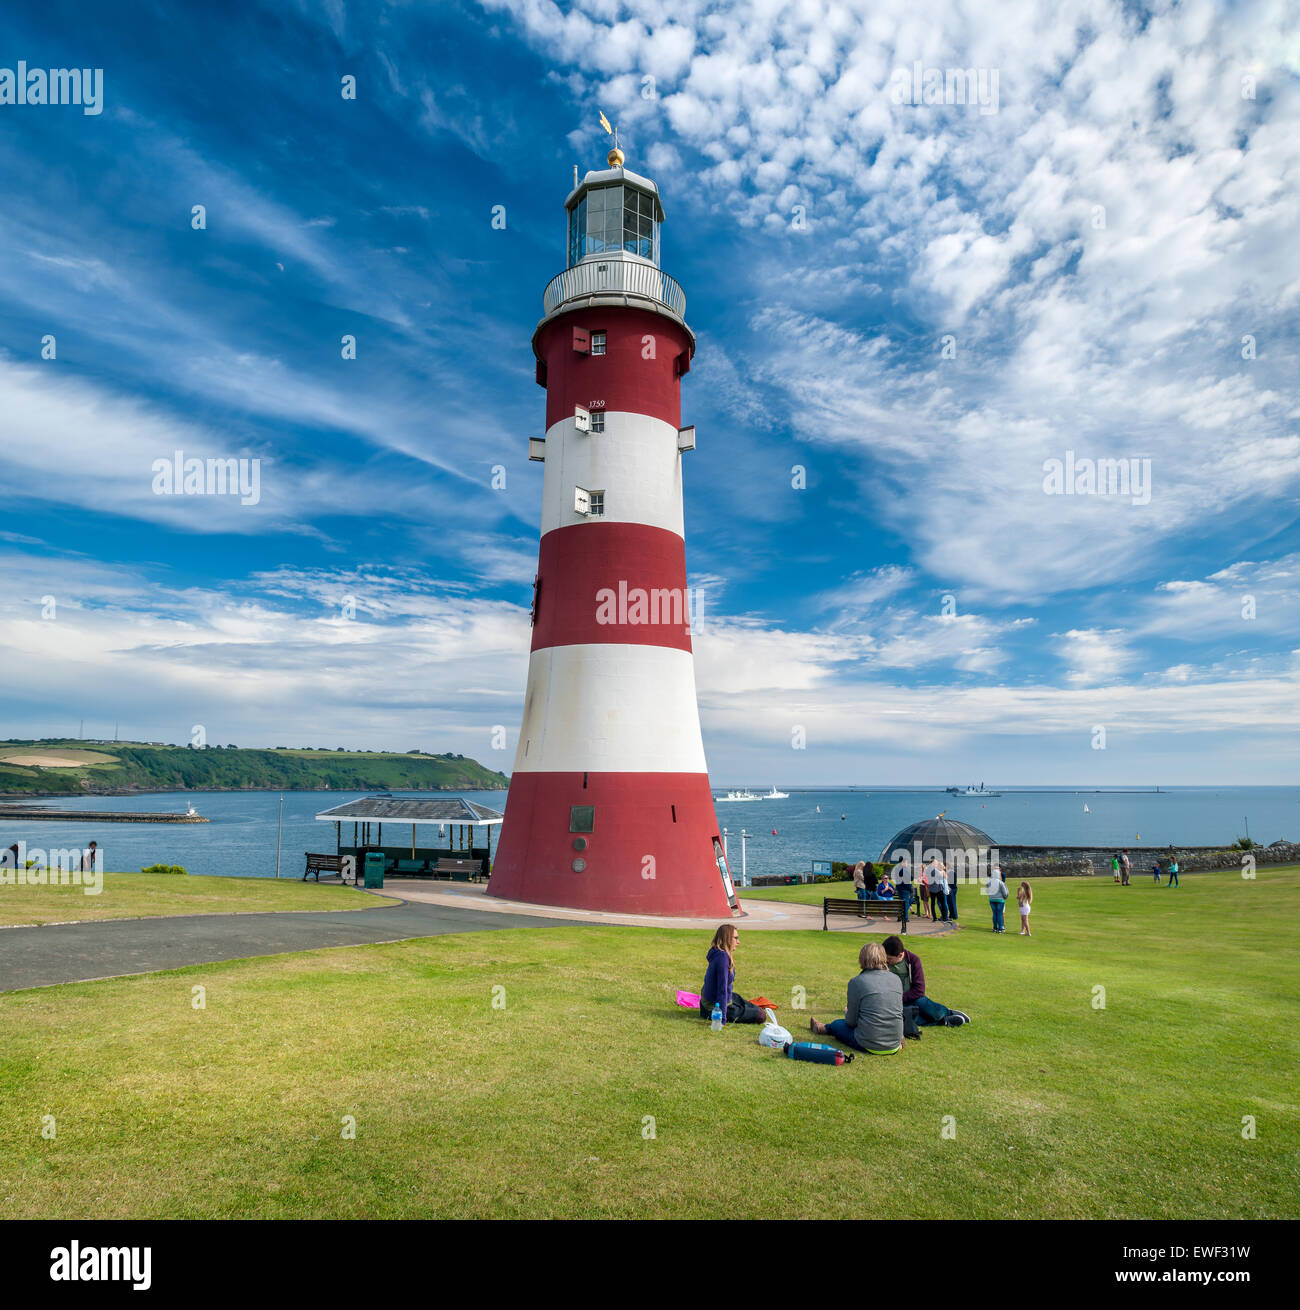 Smeatons Tower Lighthouse on the seafront at Plymouth Hoe on the south coast of Devon, England. - Stock Image